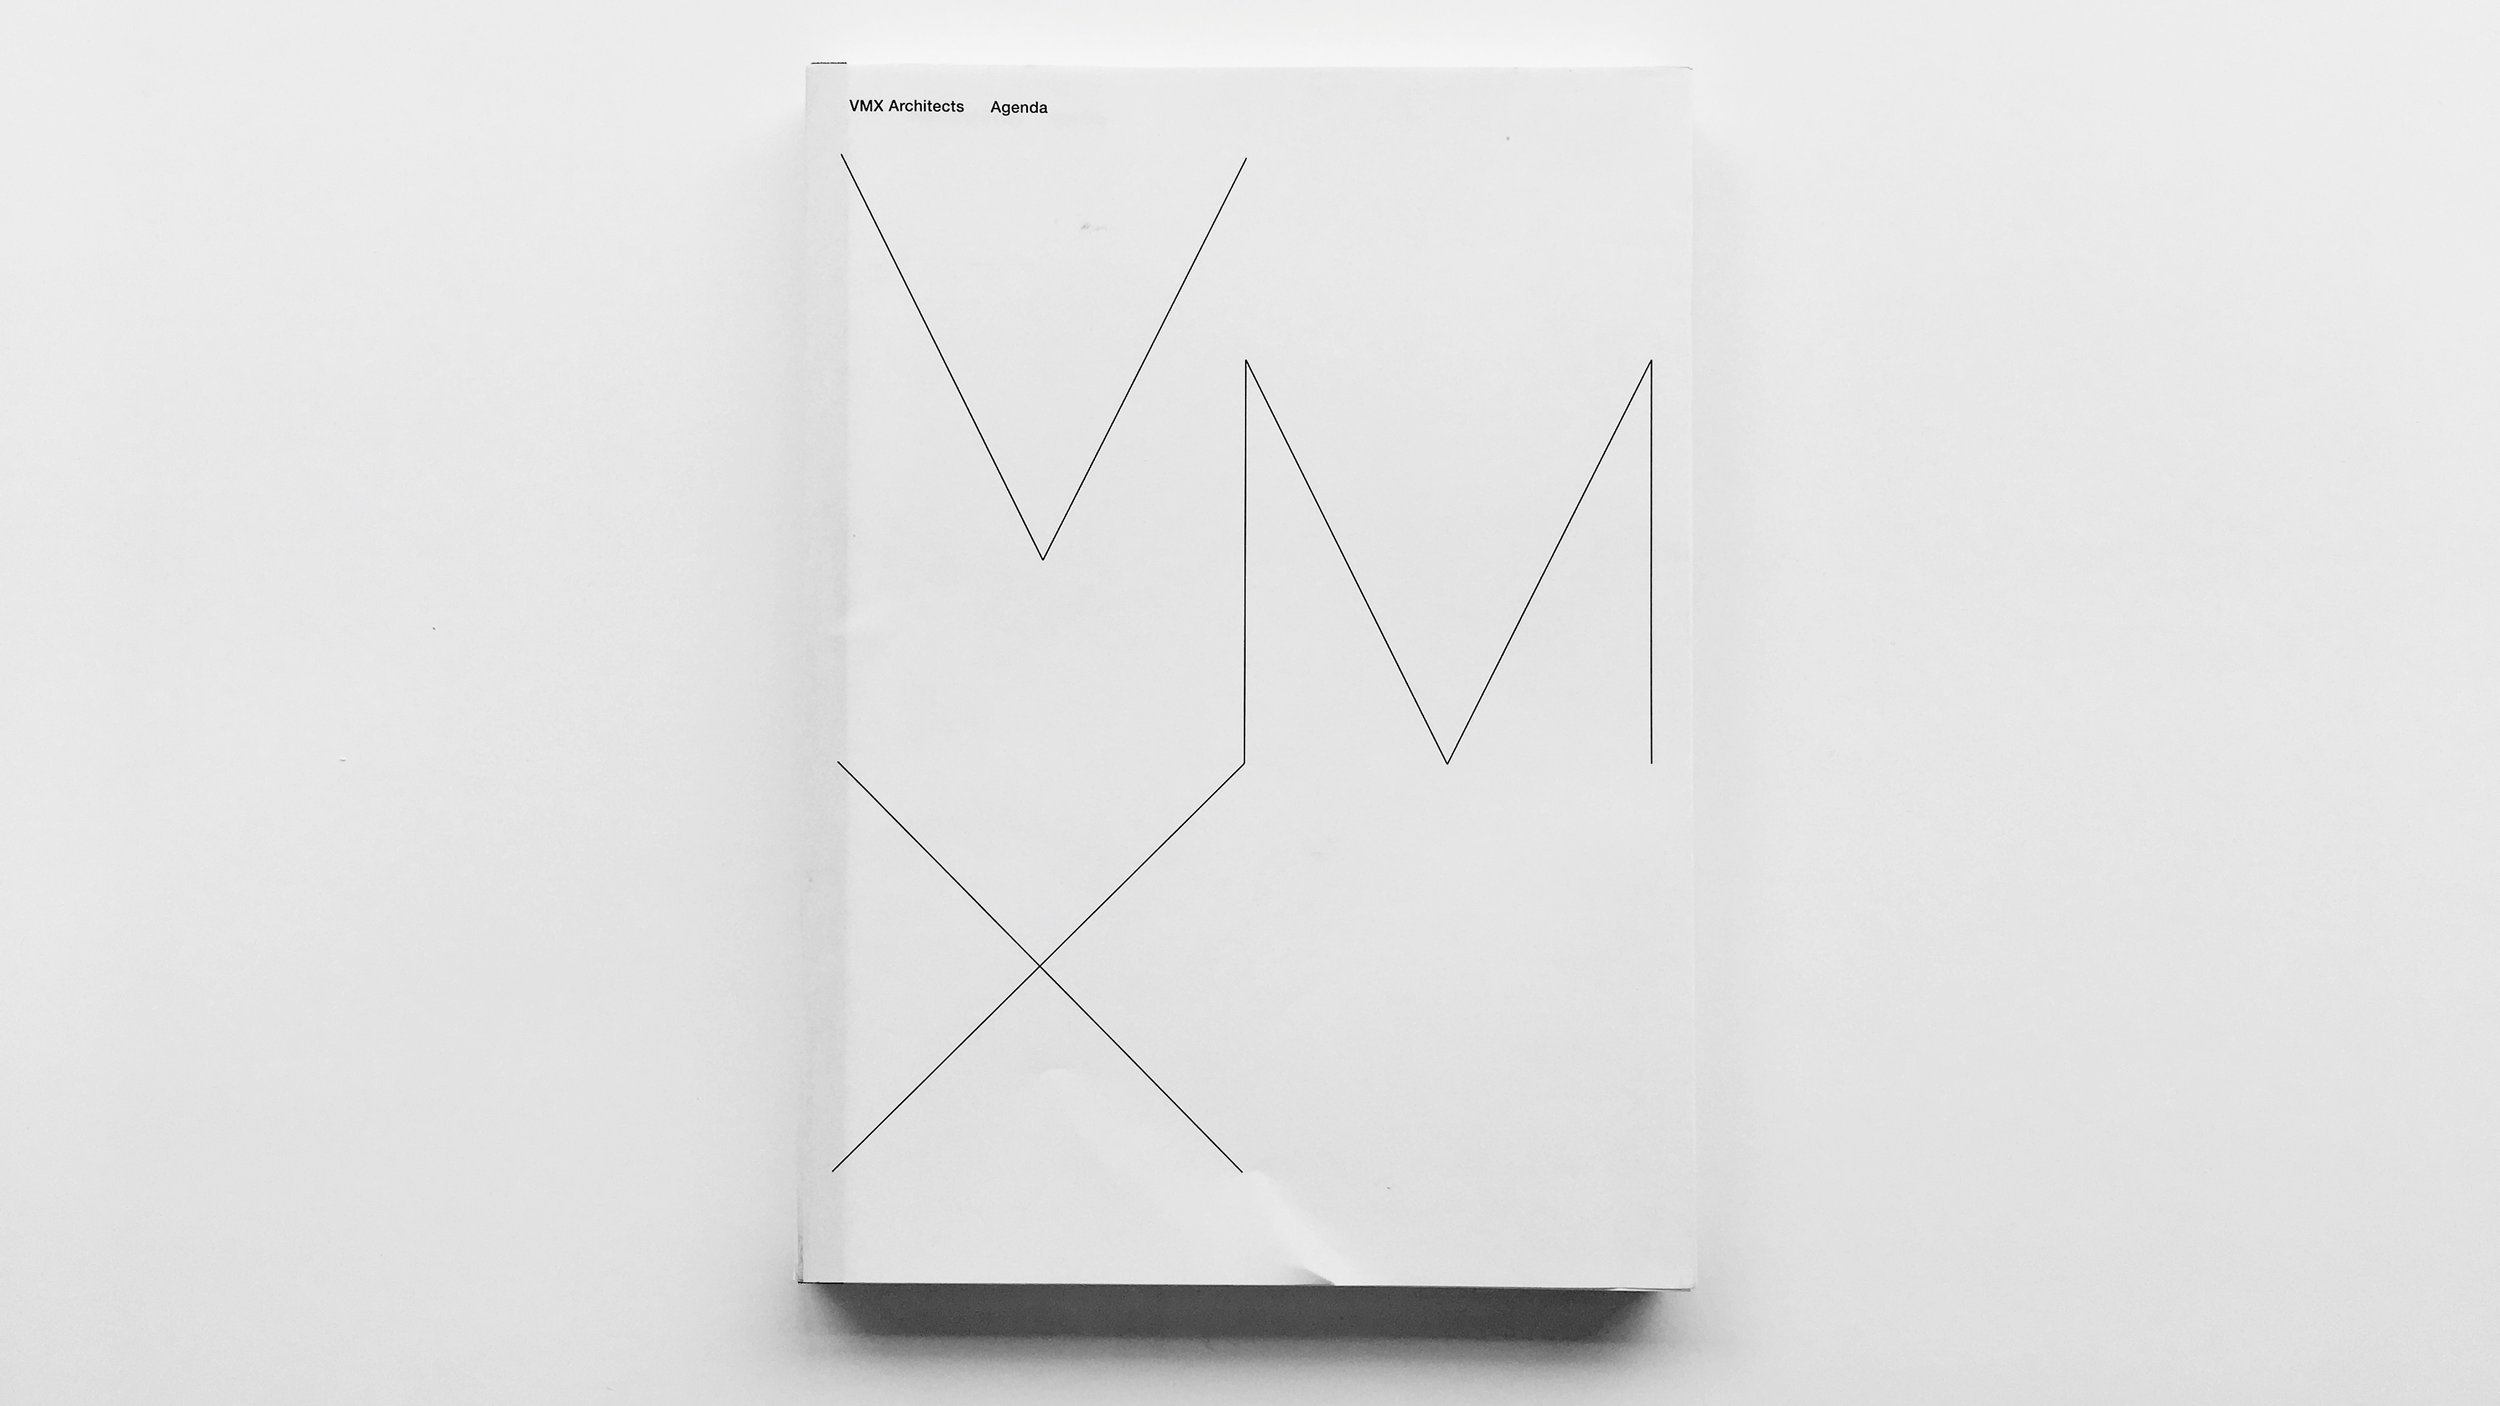 VMX Architects Agenda , Edited by  Olv Klijn , Designed by  Mevis & Van Deursen ,  010 Publishers , 2007, 312 pages